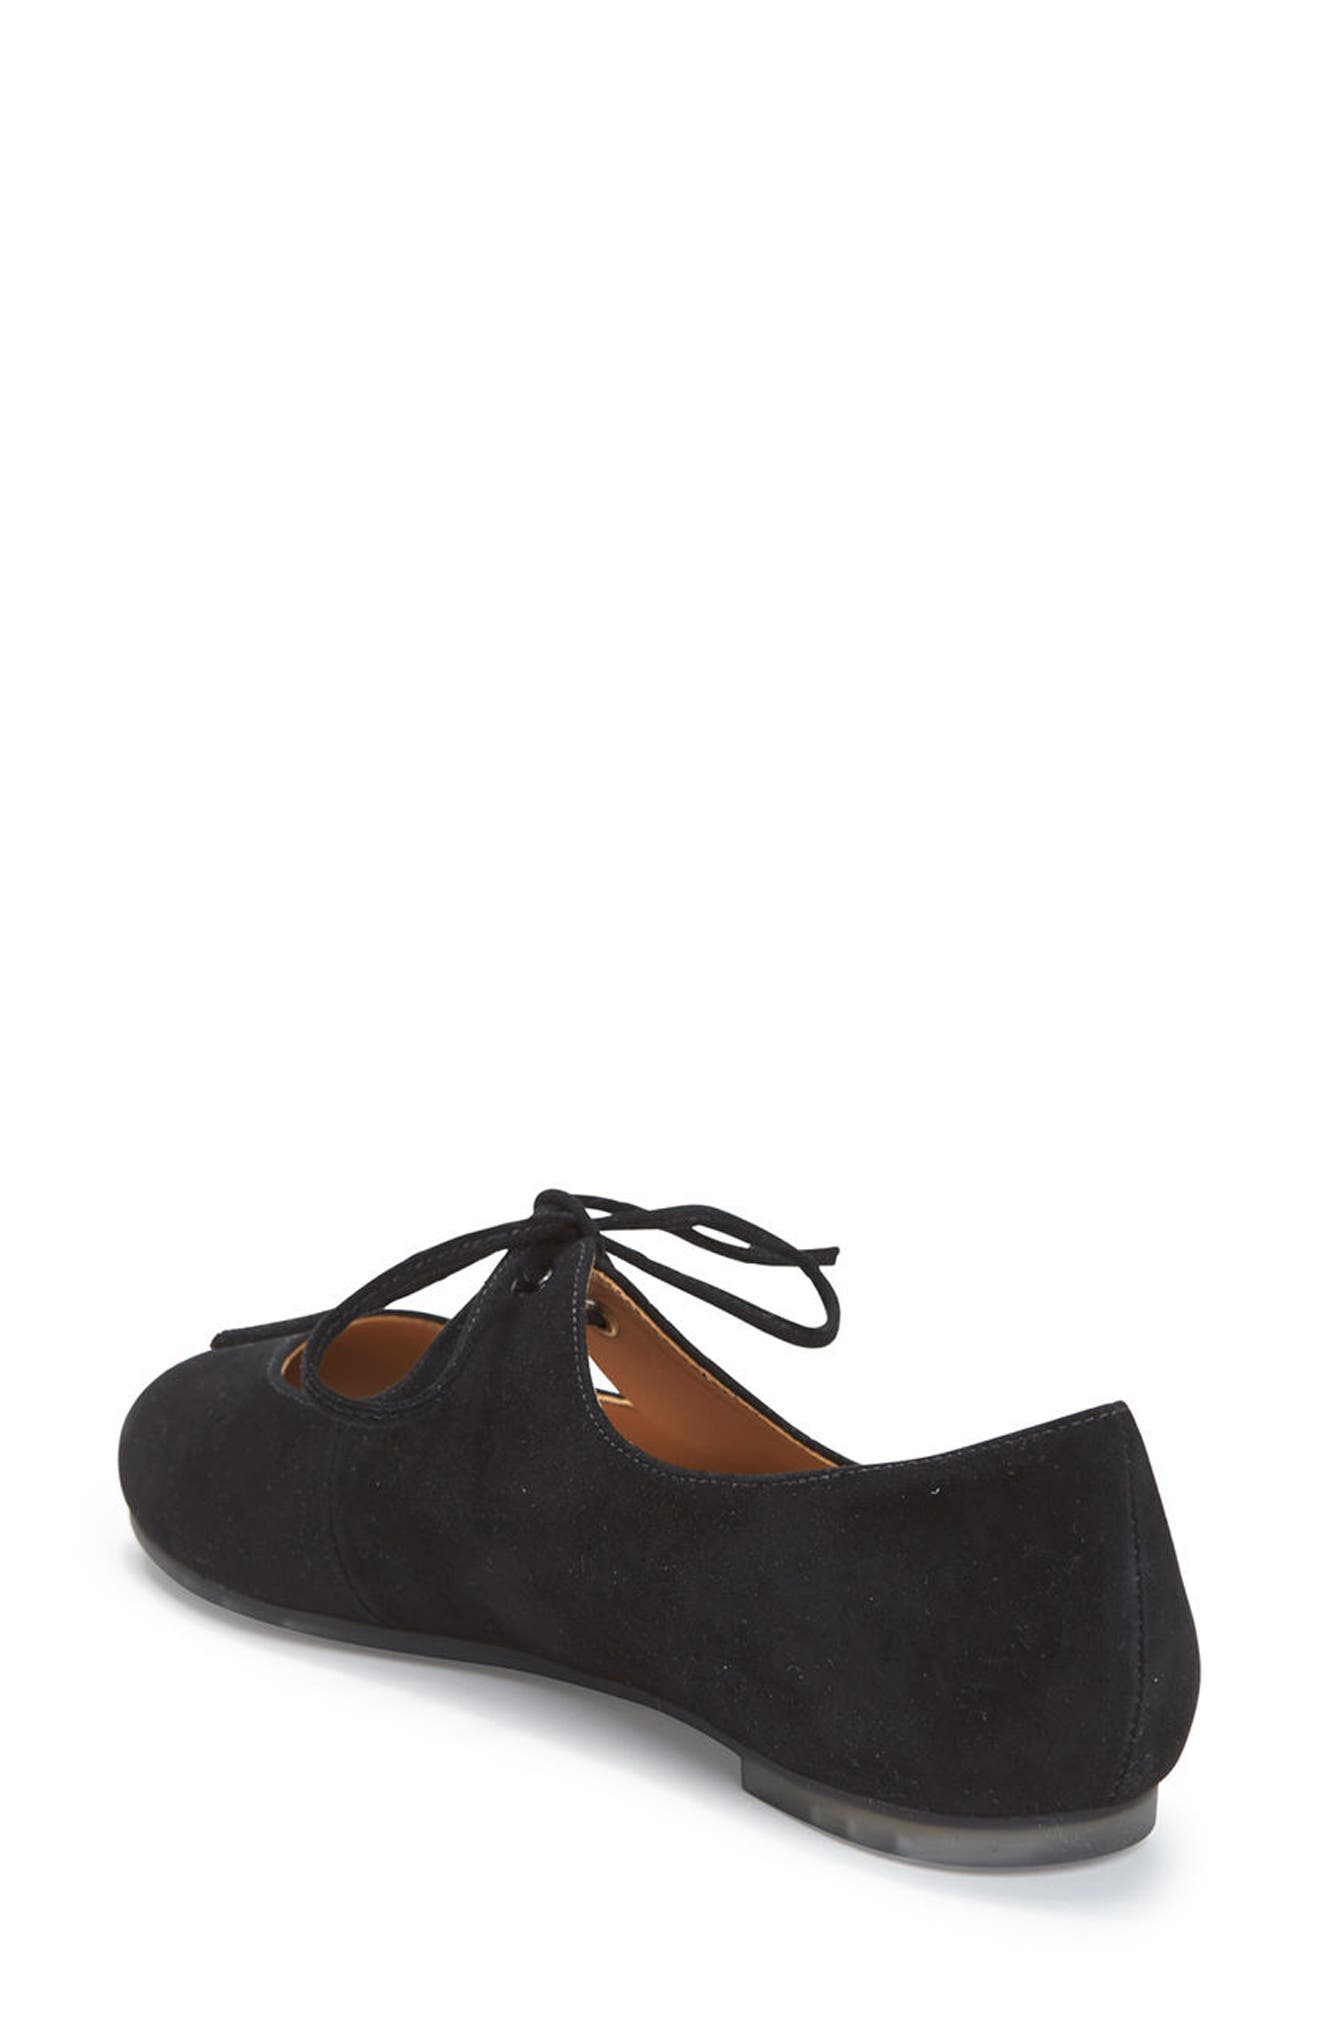 Cacey Mary Jane Flat,                             Alternate thumbnail 2, color,                             Black Suede